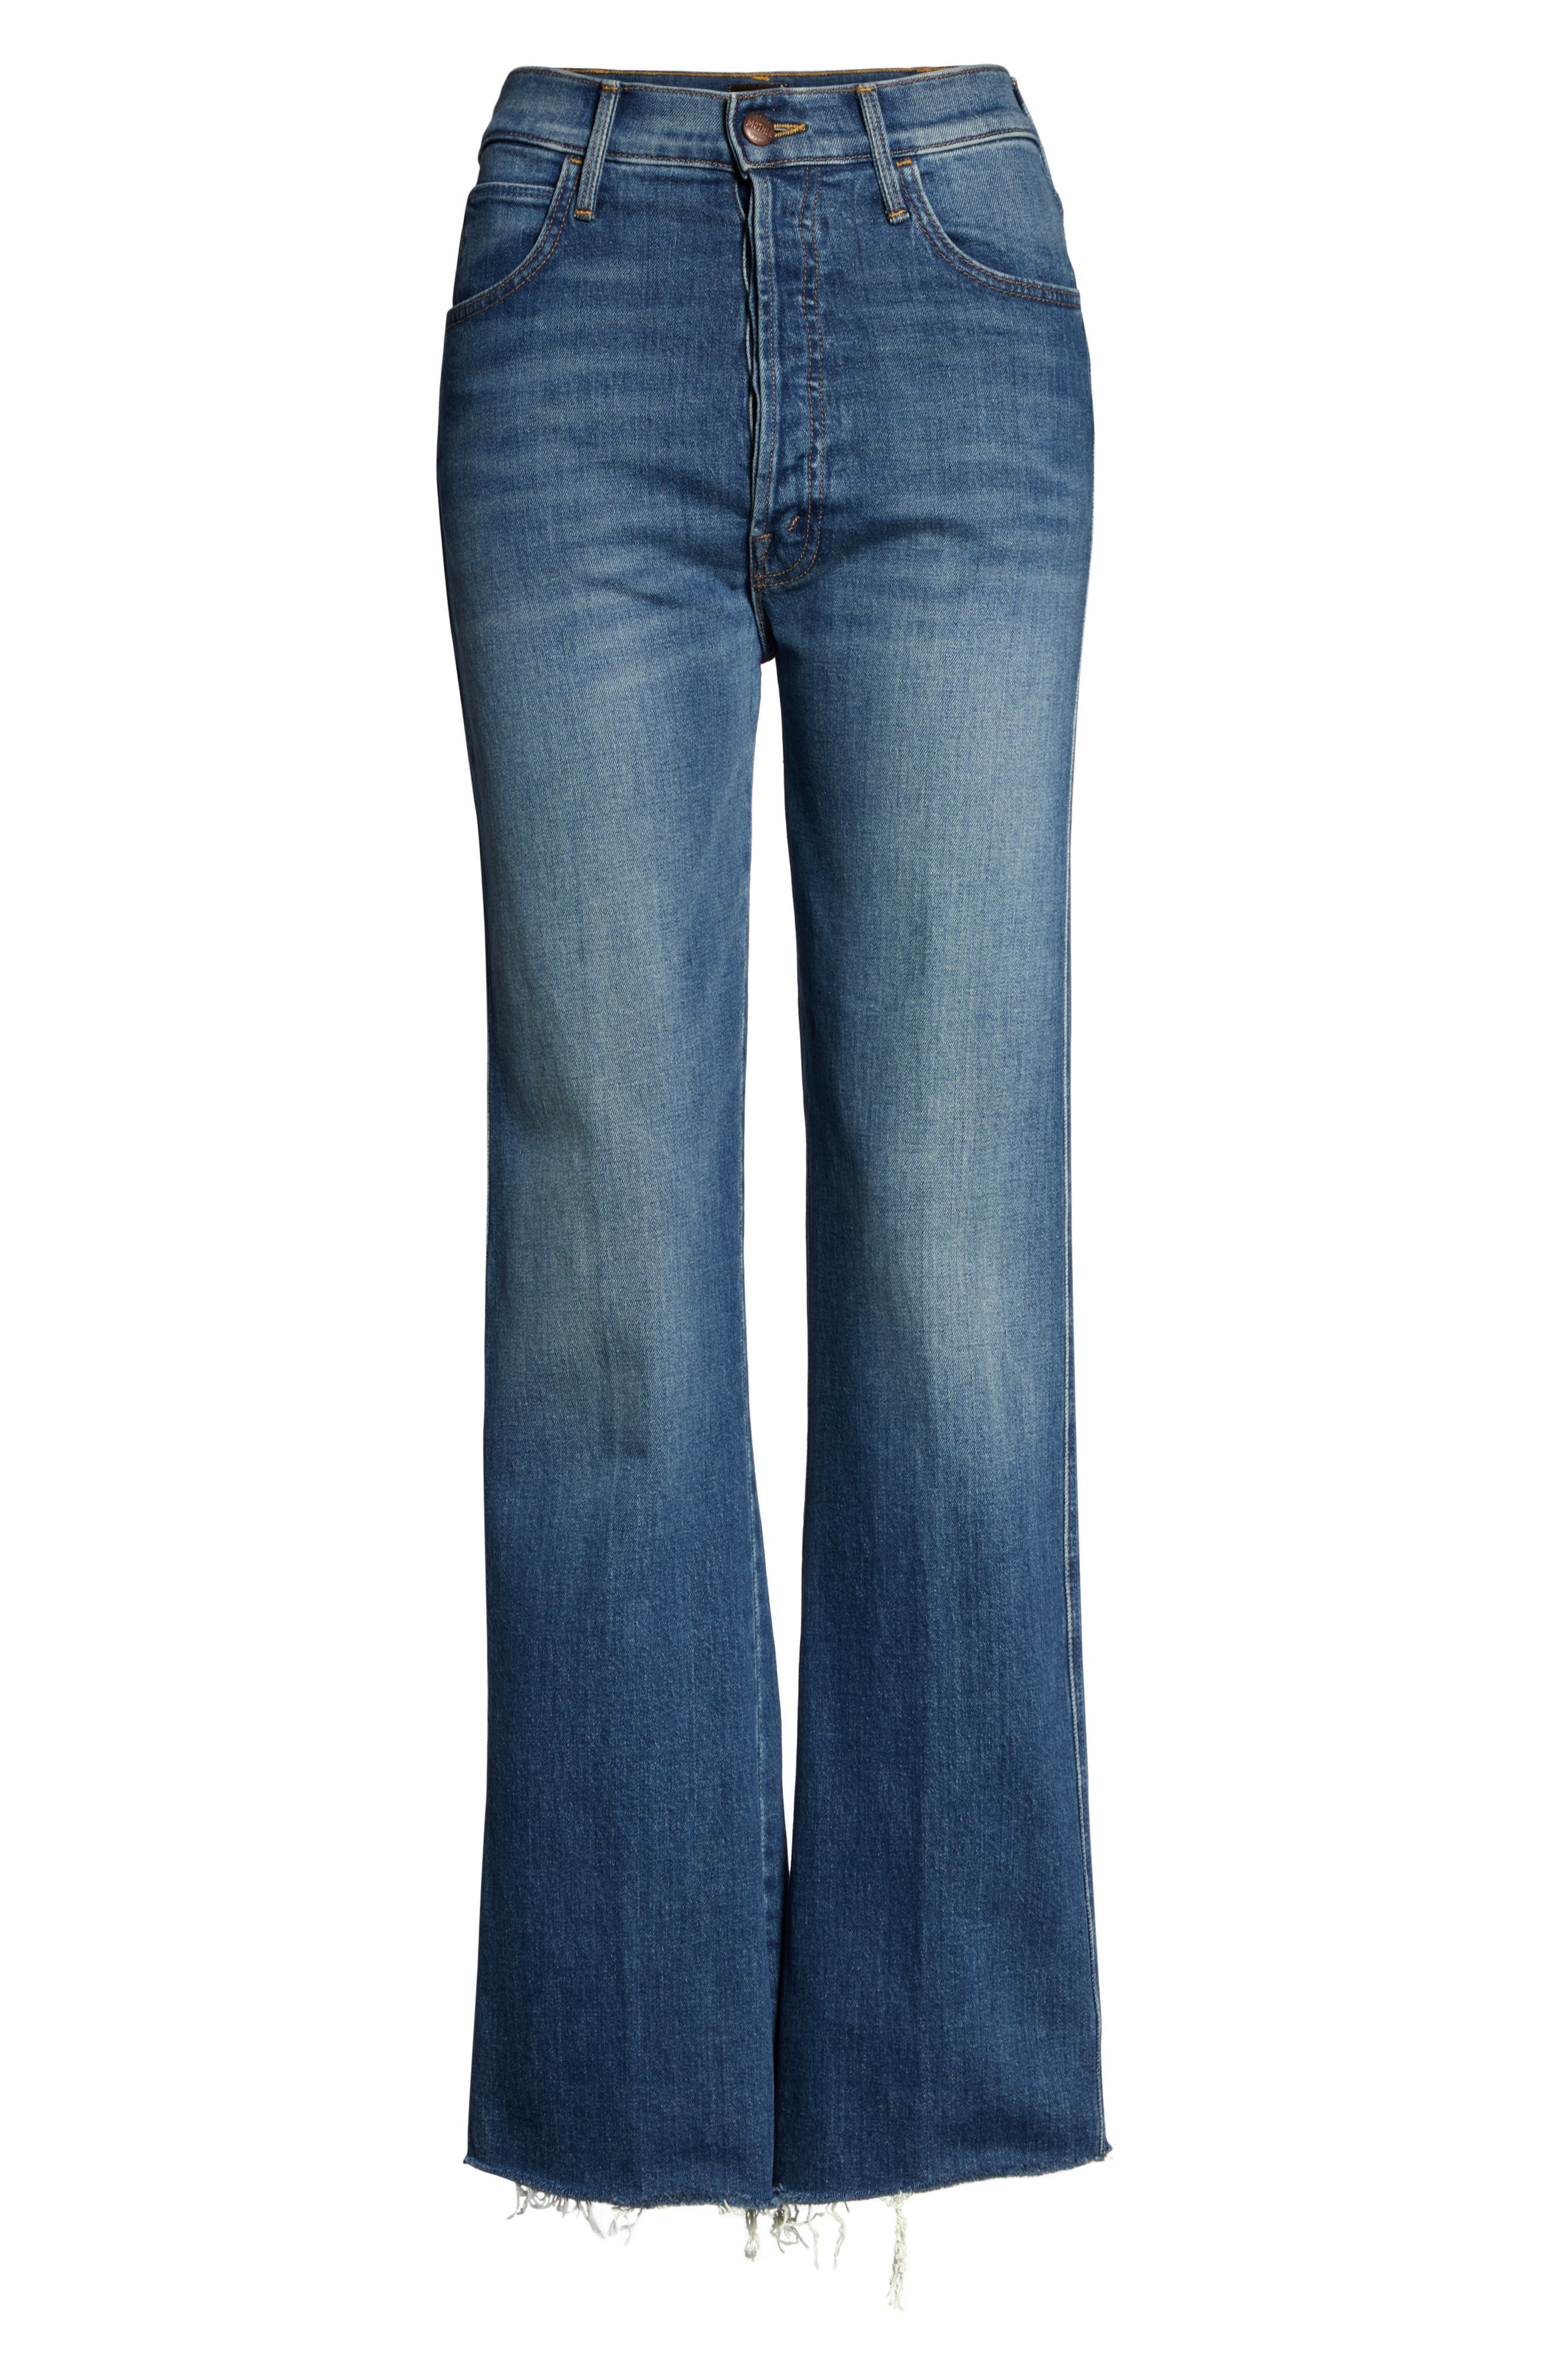 MOTHER, The Tripper Super High Waist Frayed Bootcut Jeans, Alternate thumbnail 6, color, JUST ONE SIP